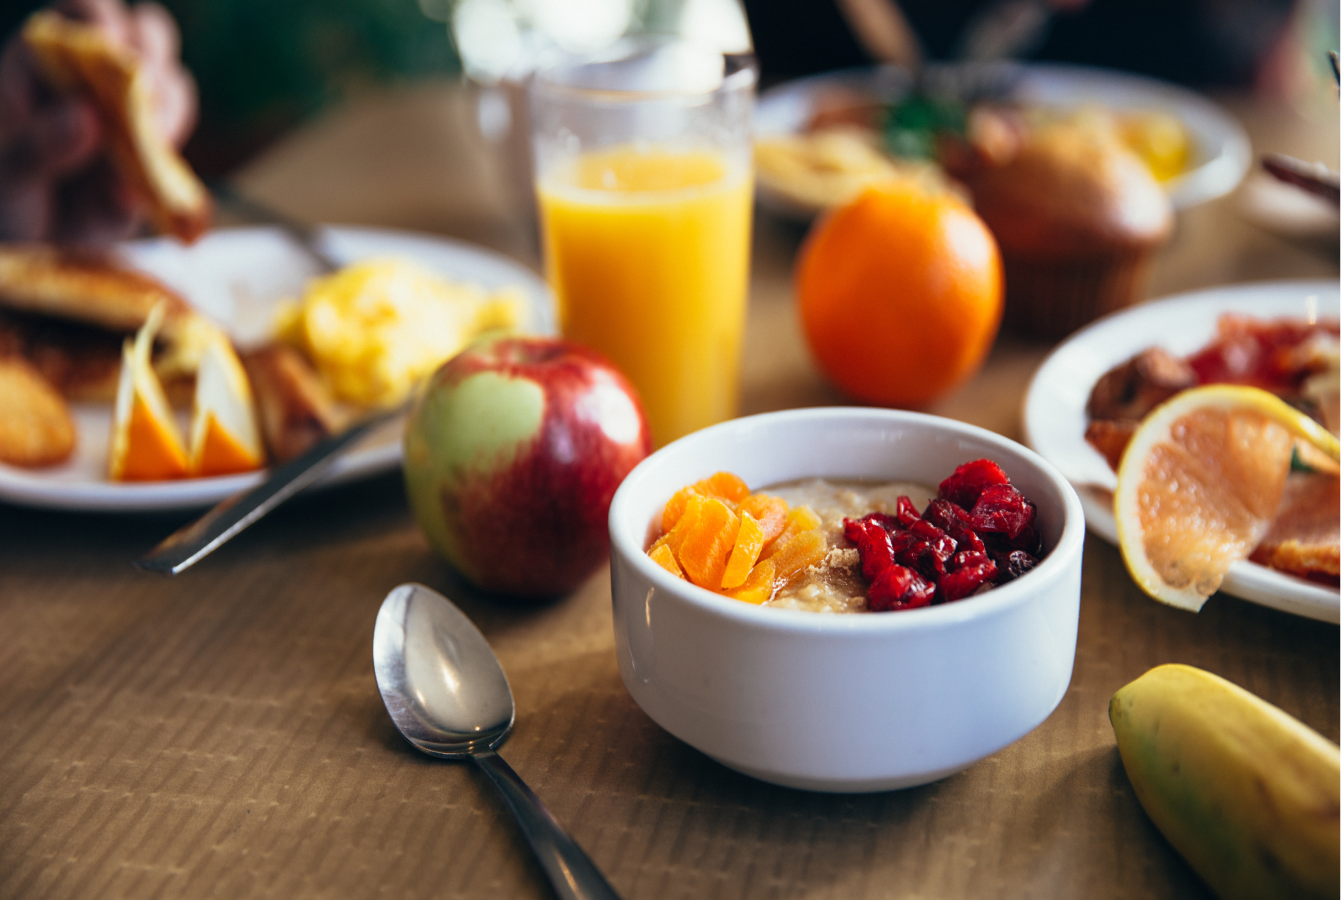 A healthy breakast, consisting of mostly fruits and oatmeal